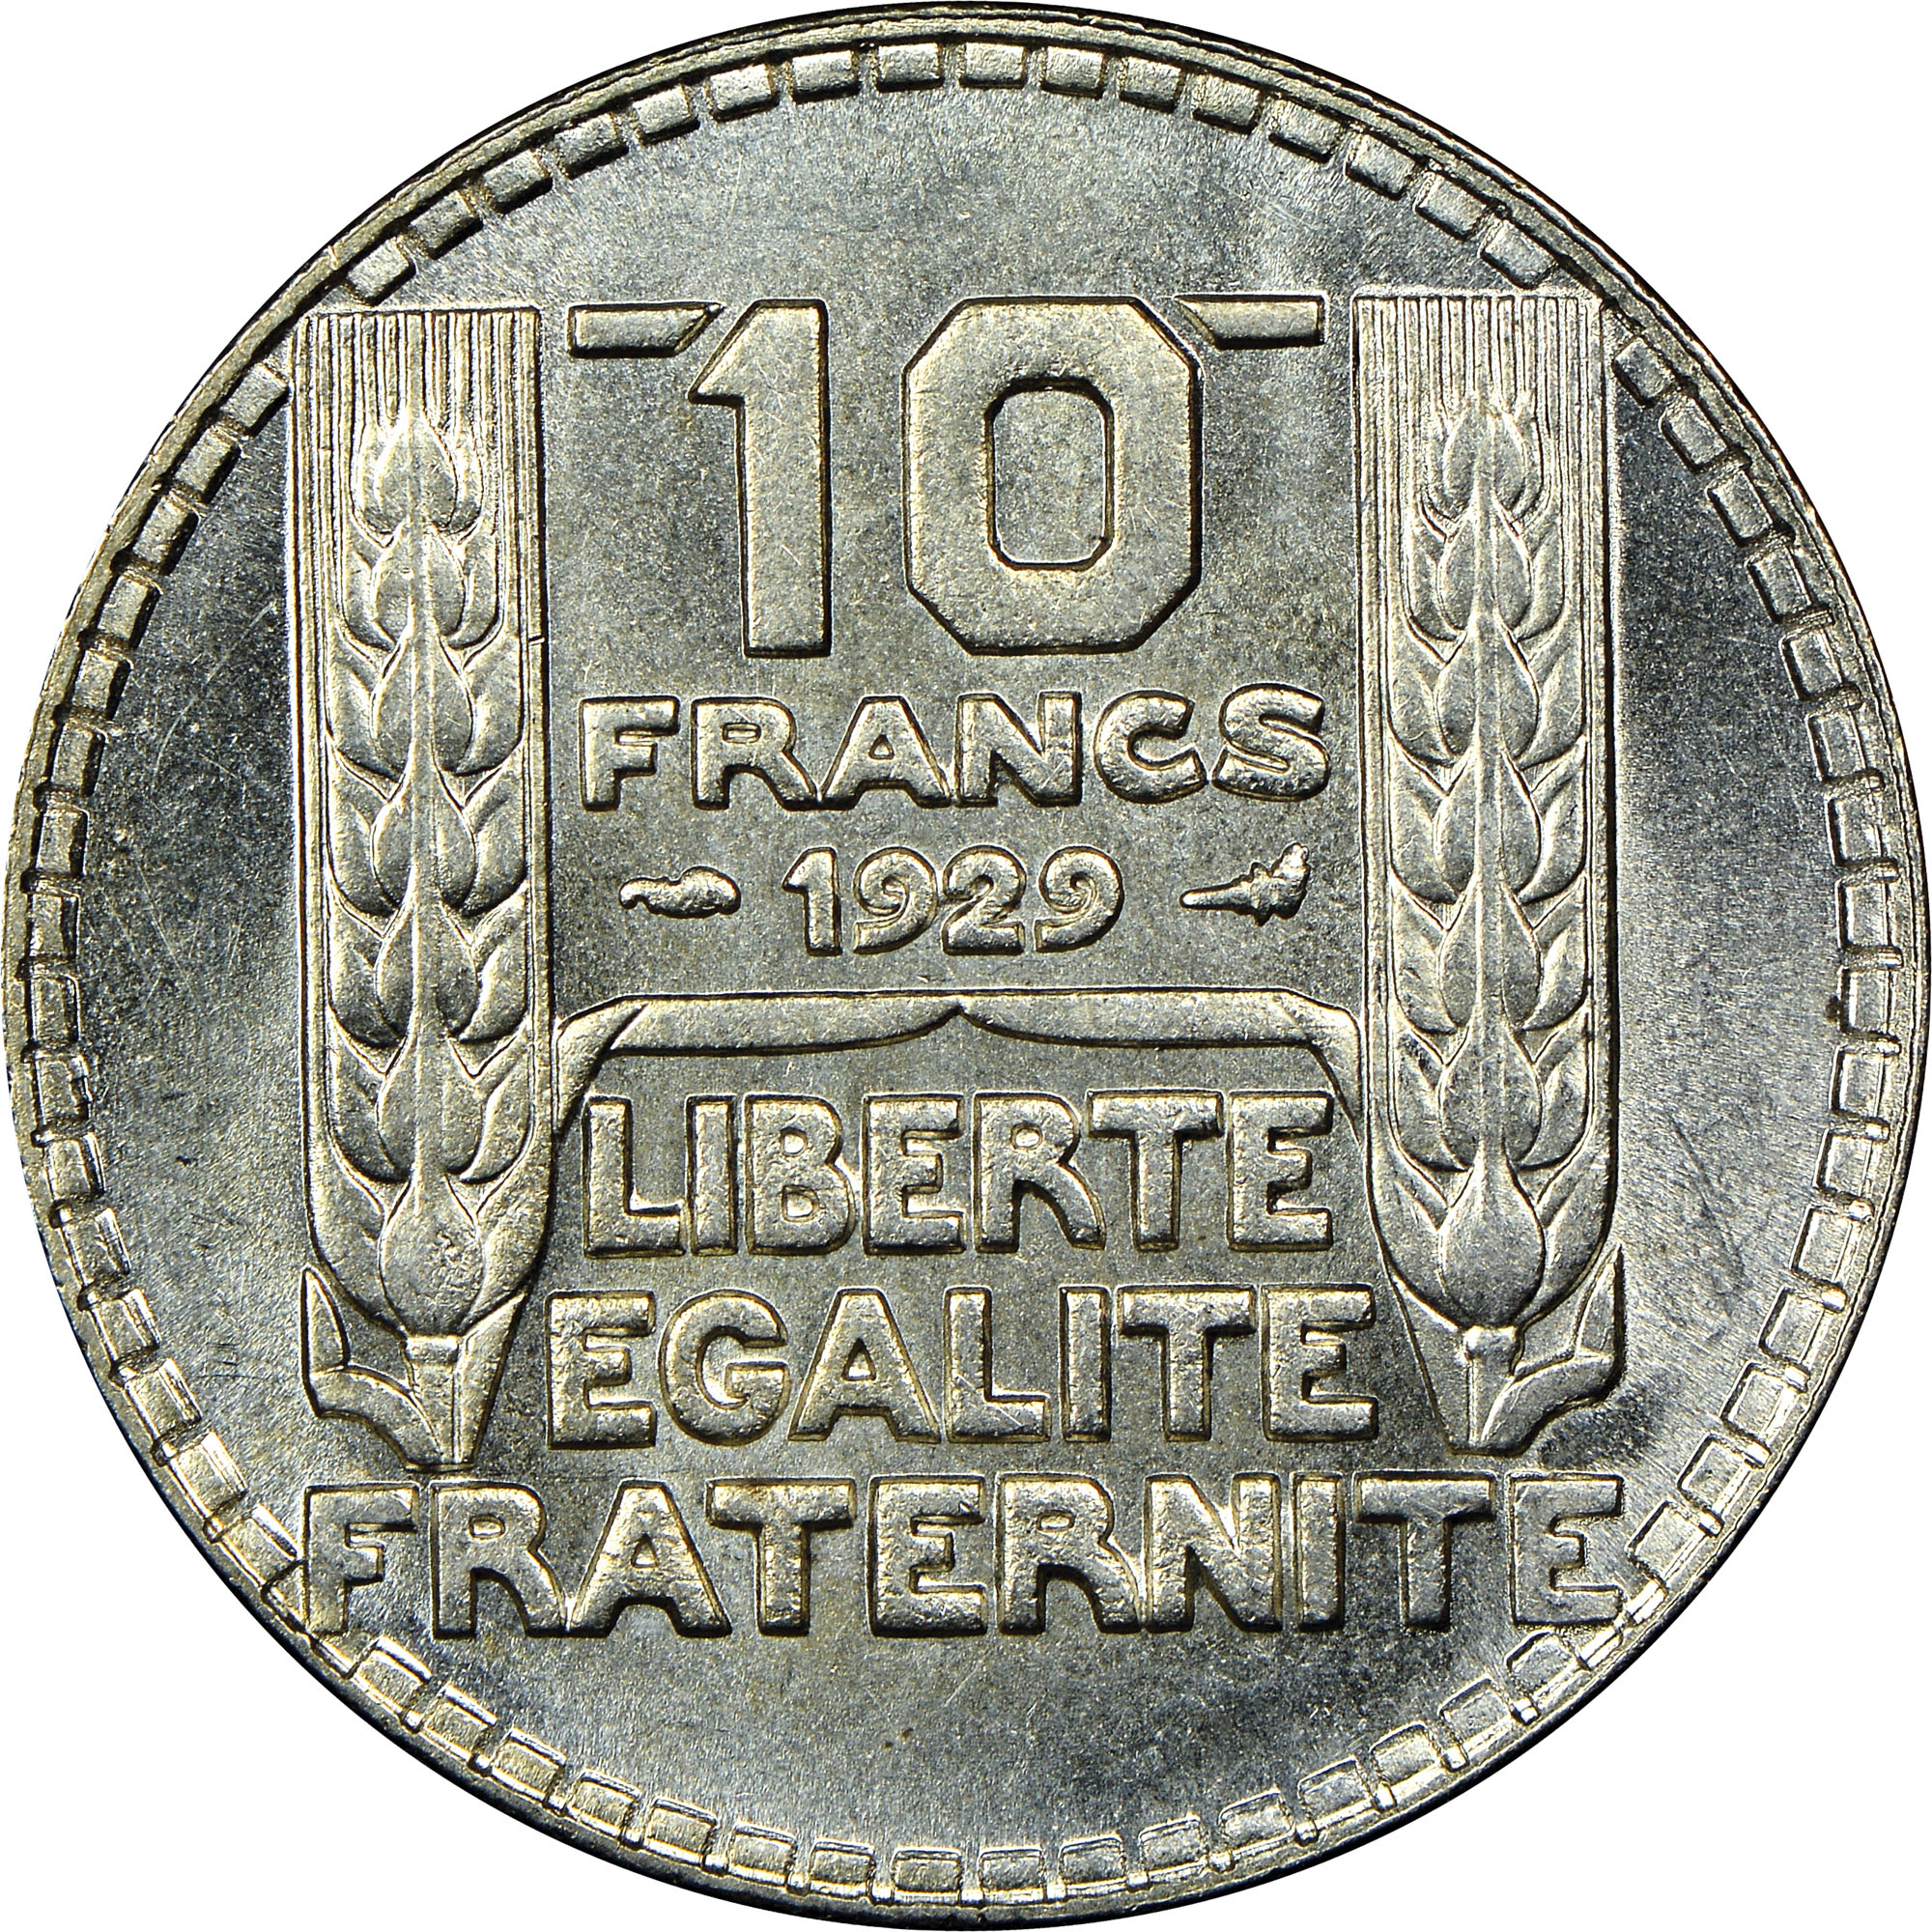 France 10 francs km 878 prices values ngc for France francs